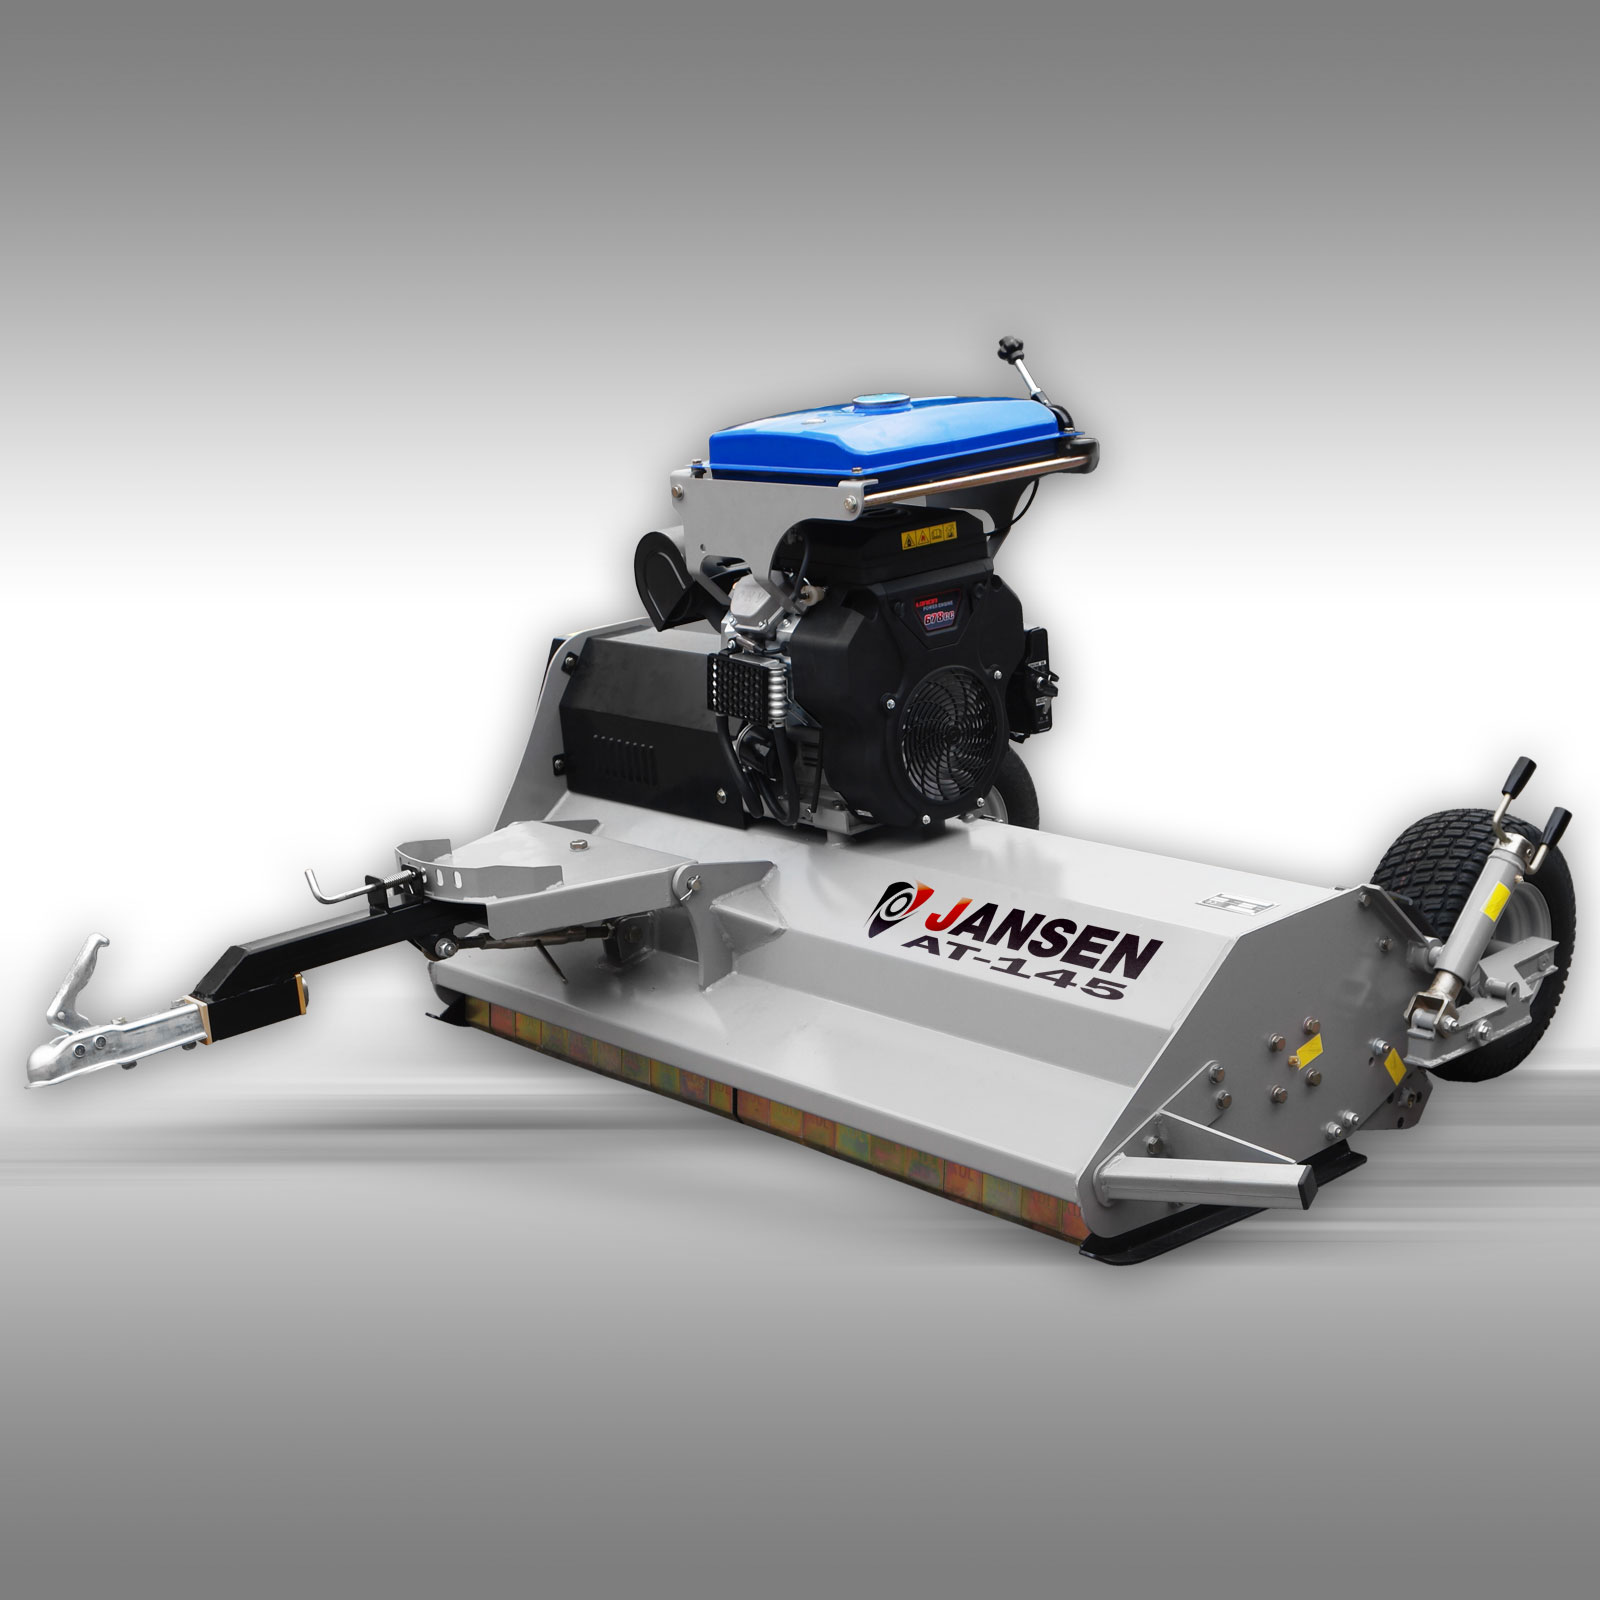 jansen-145m-atv-flail-mower-with-22-hp-petrol-engine